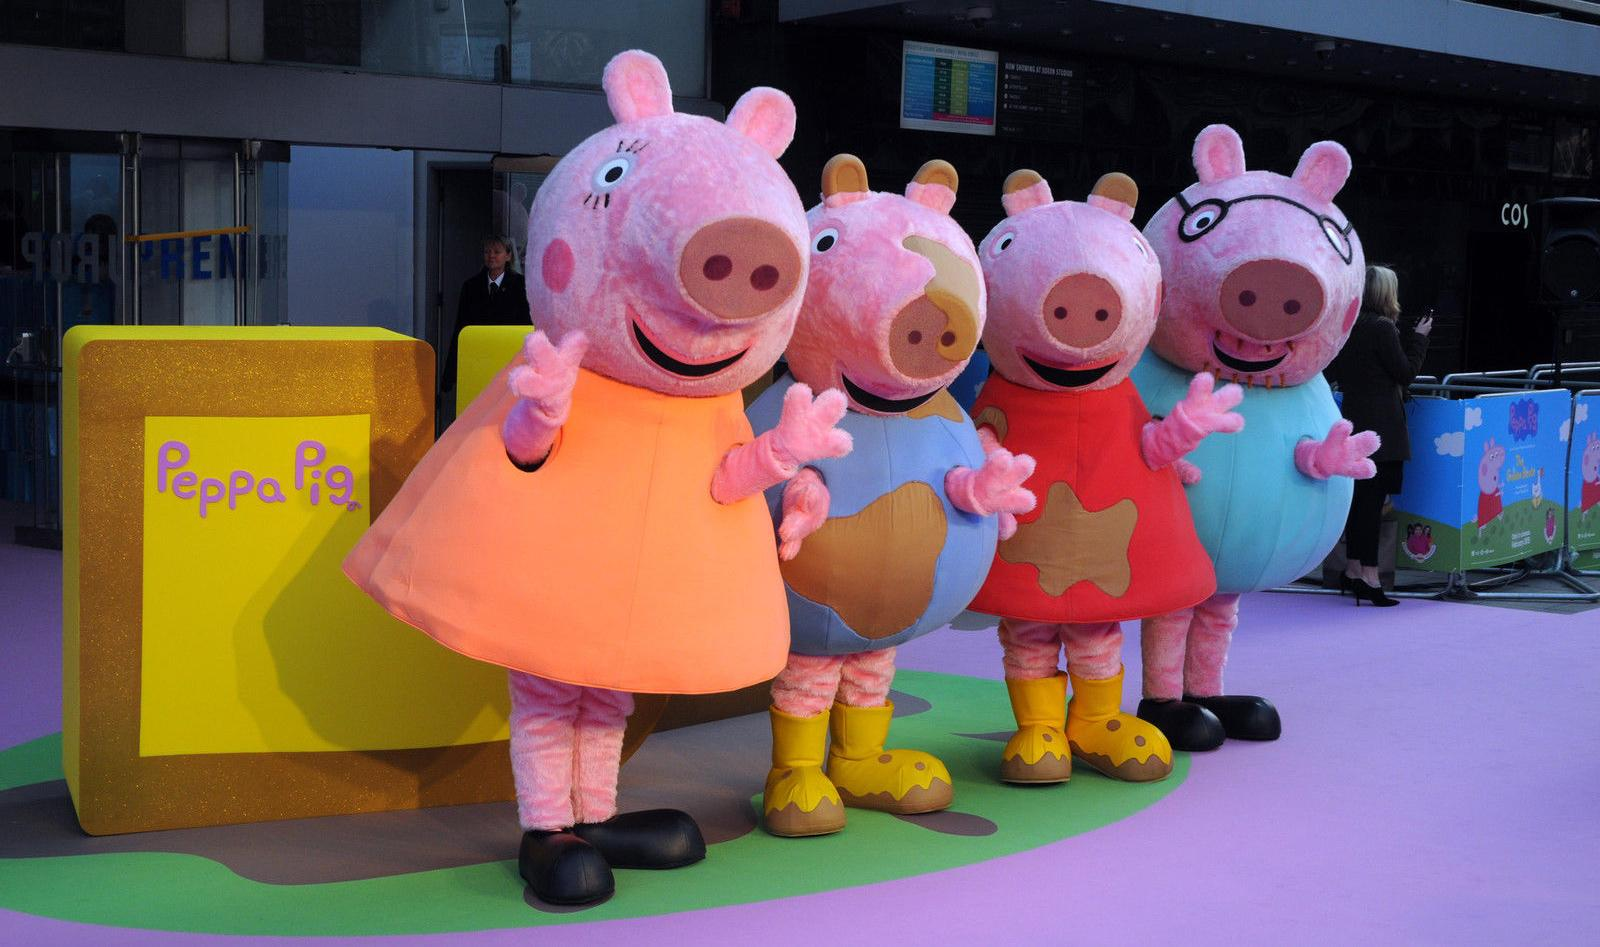 Peppa Pig Hong Kong peppa pig peppa s london day out sticker activity